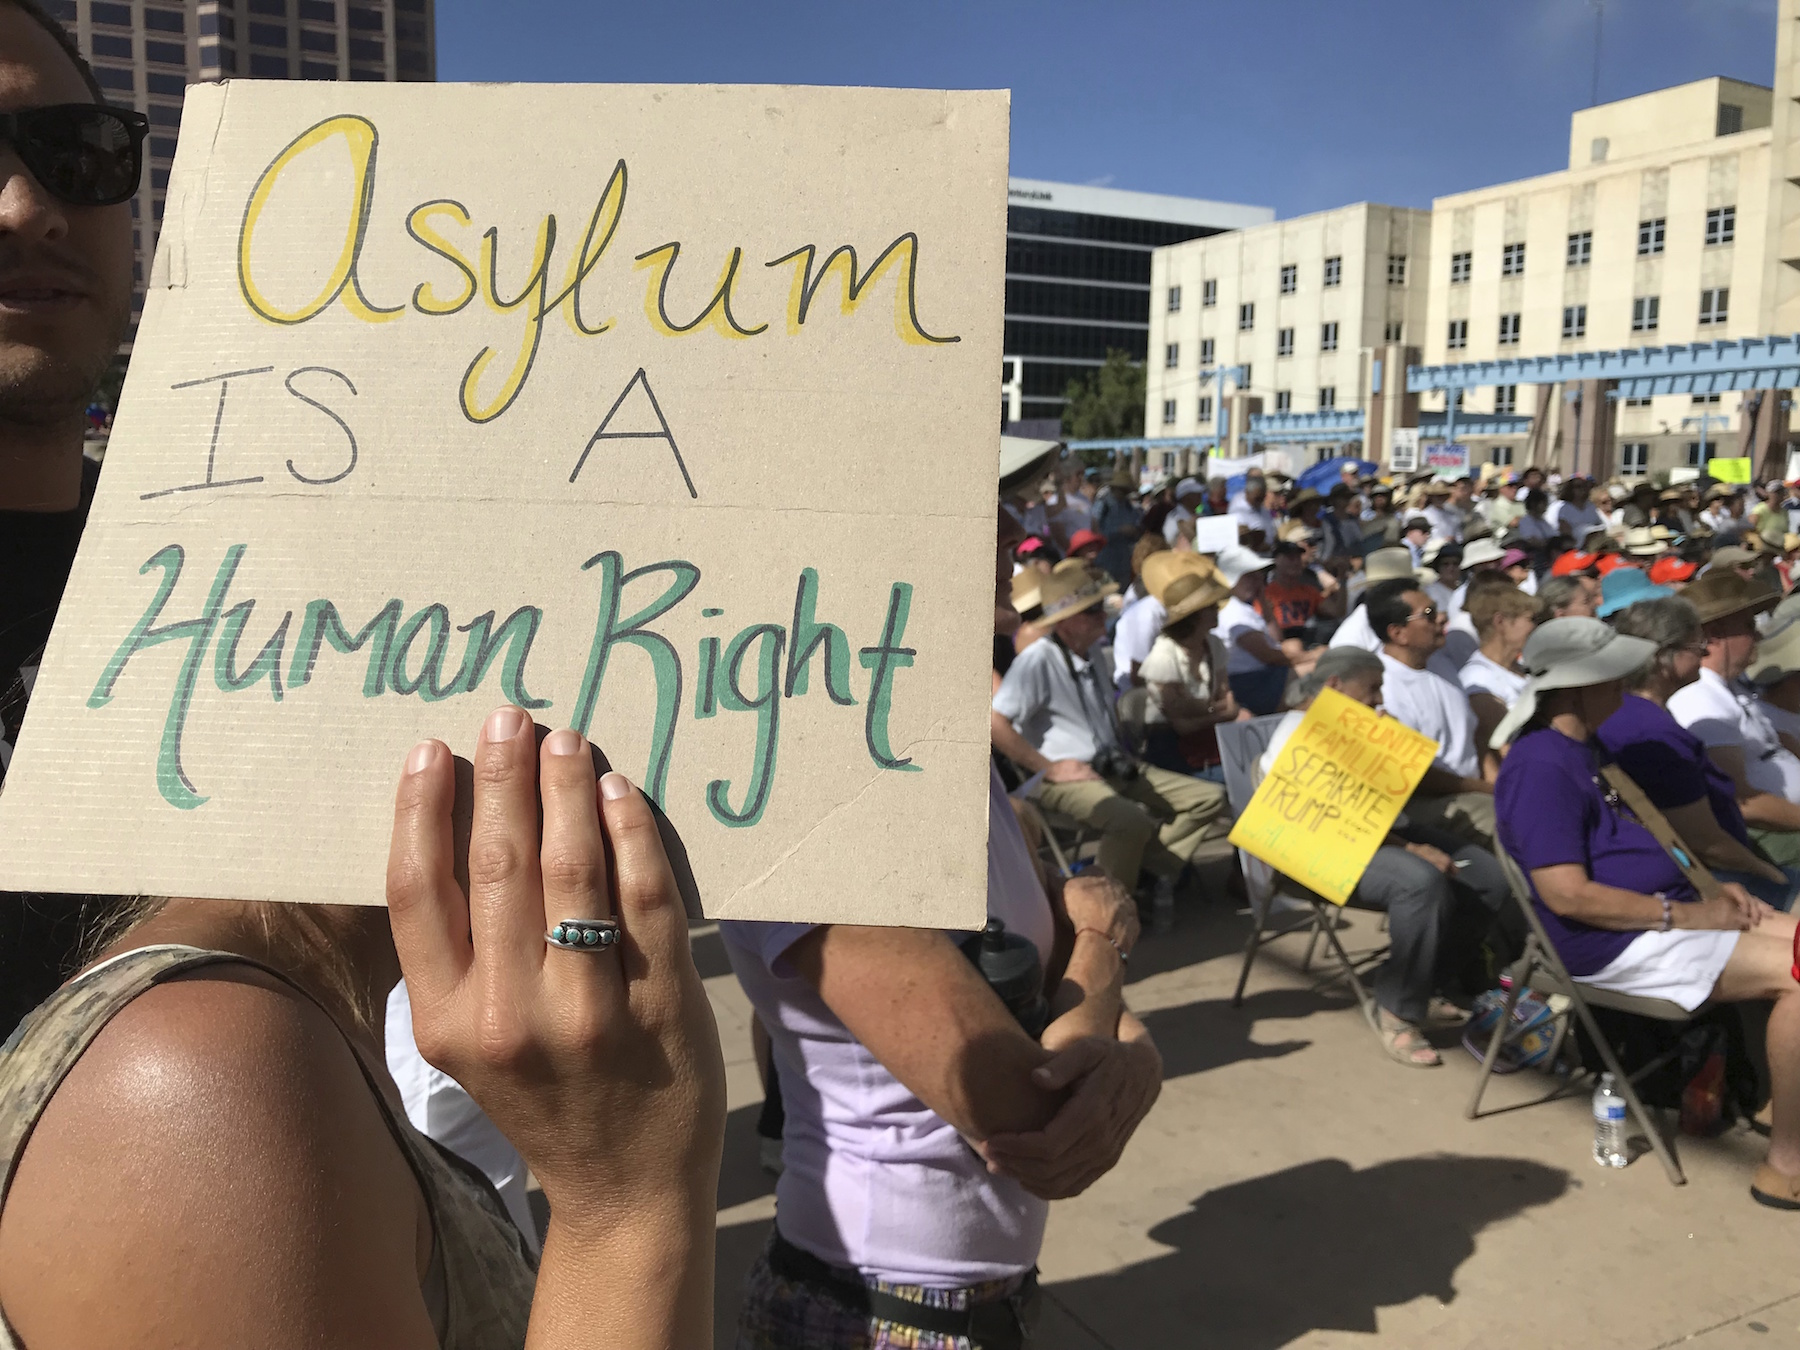 "<div class=""meta image-caption""><div class=""origin-logo origin-image ap""><span>AP</span></div><span class=""caption-text"">A protester holds up a sign as thousands gather for a demonstration on Civic Plaza in Albuquerque, N.M., on Saturday, June 30, 2018. (AP Photo/Susan Montoya Bryan)</span></div>"